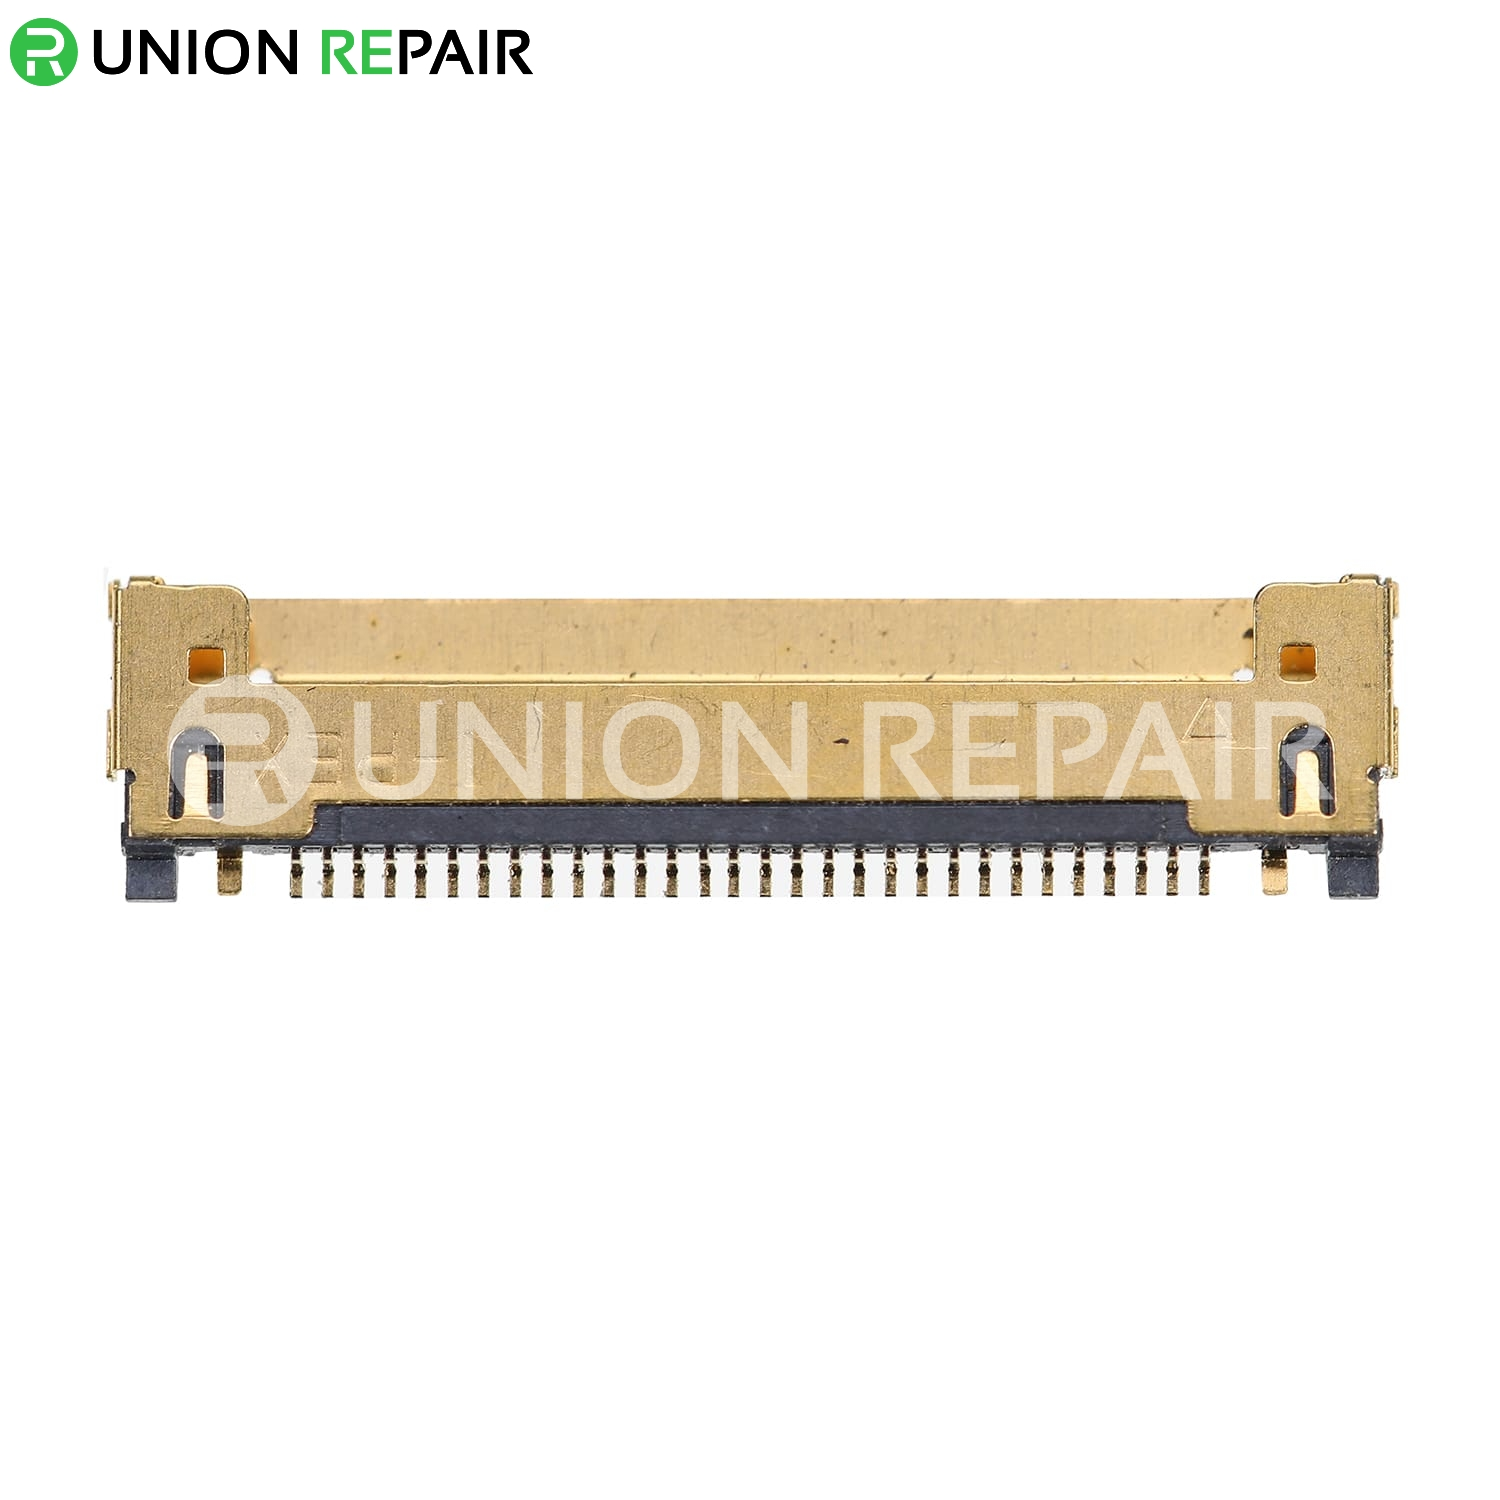 30-Pin iMac 21.5 Odyson Replacement for MacBook Air 2012-2015 Pro 13 Unibody 2012 2012, 2013 LCD Display LVDS Cable Connector